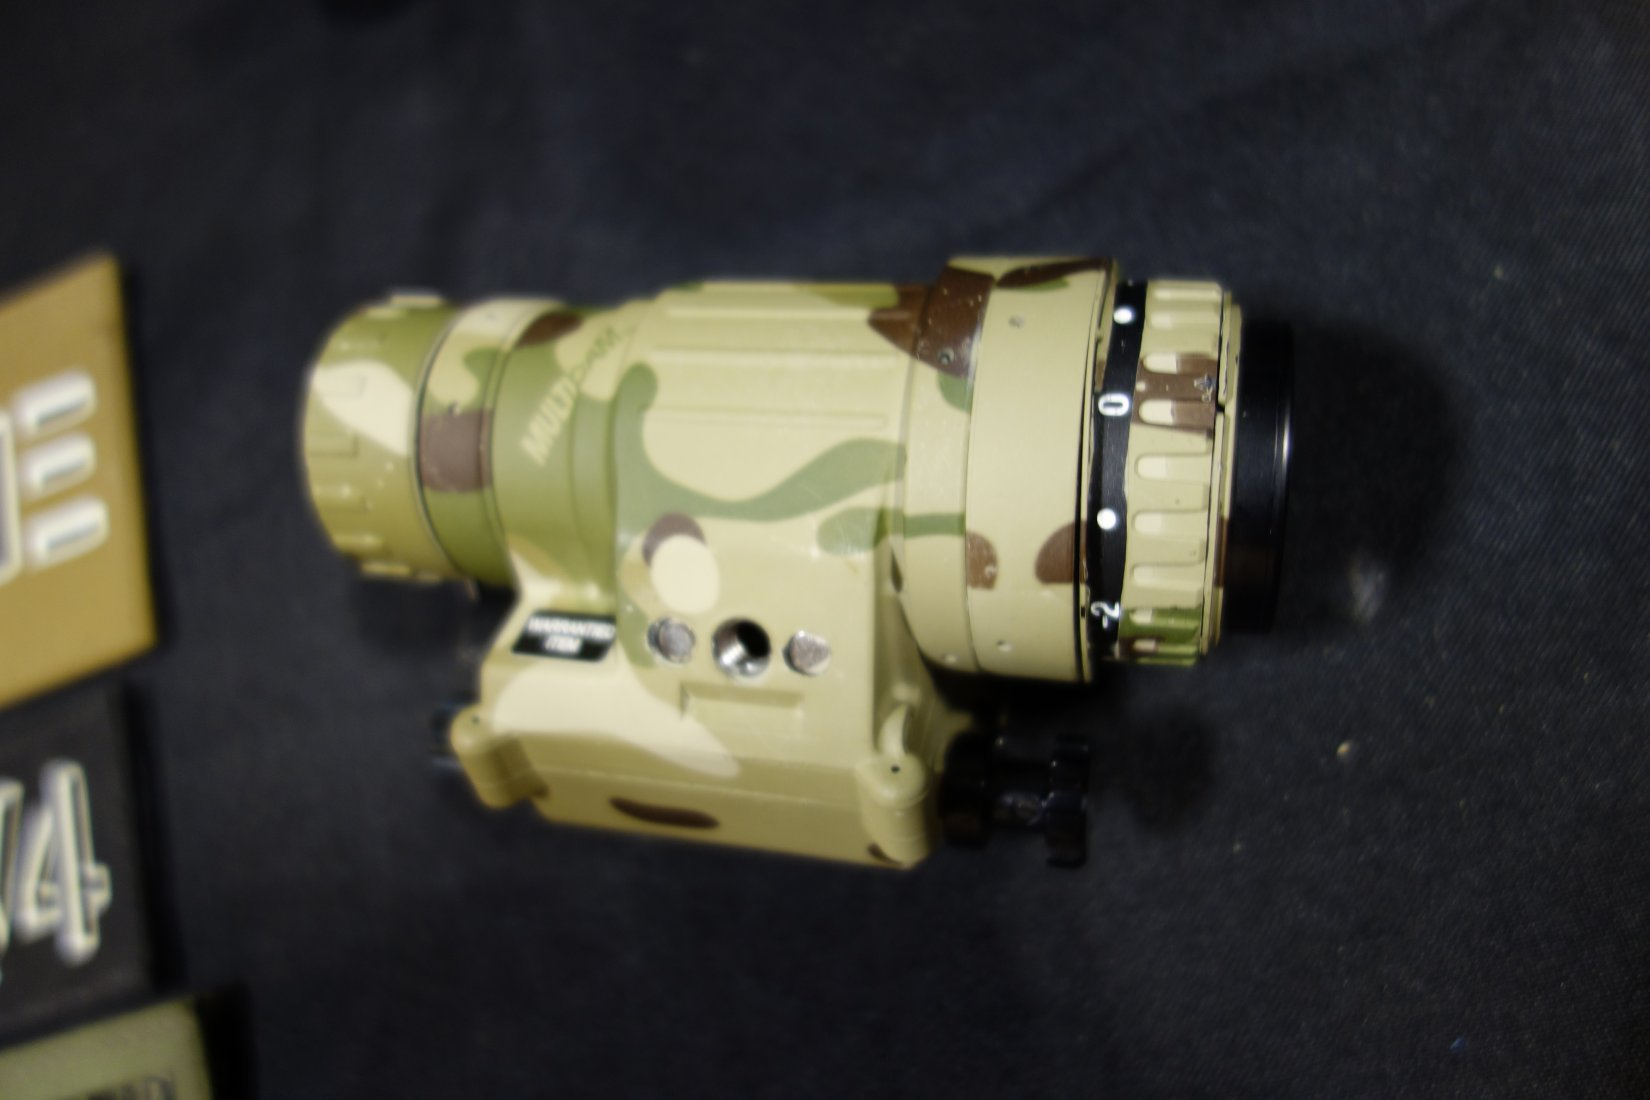 TNVC TNV/PVS-14 Tactical Night Vision Monocular (NVM) System for Military Special Operations Forces (SOF) Missions: More Modular, More Versatile